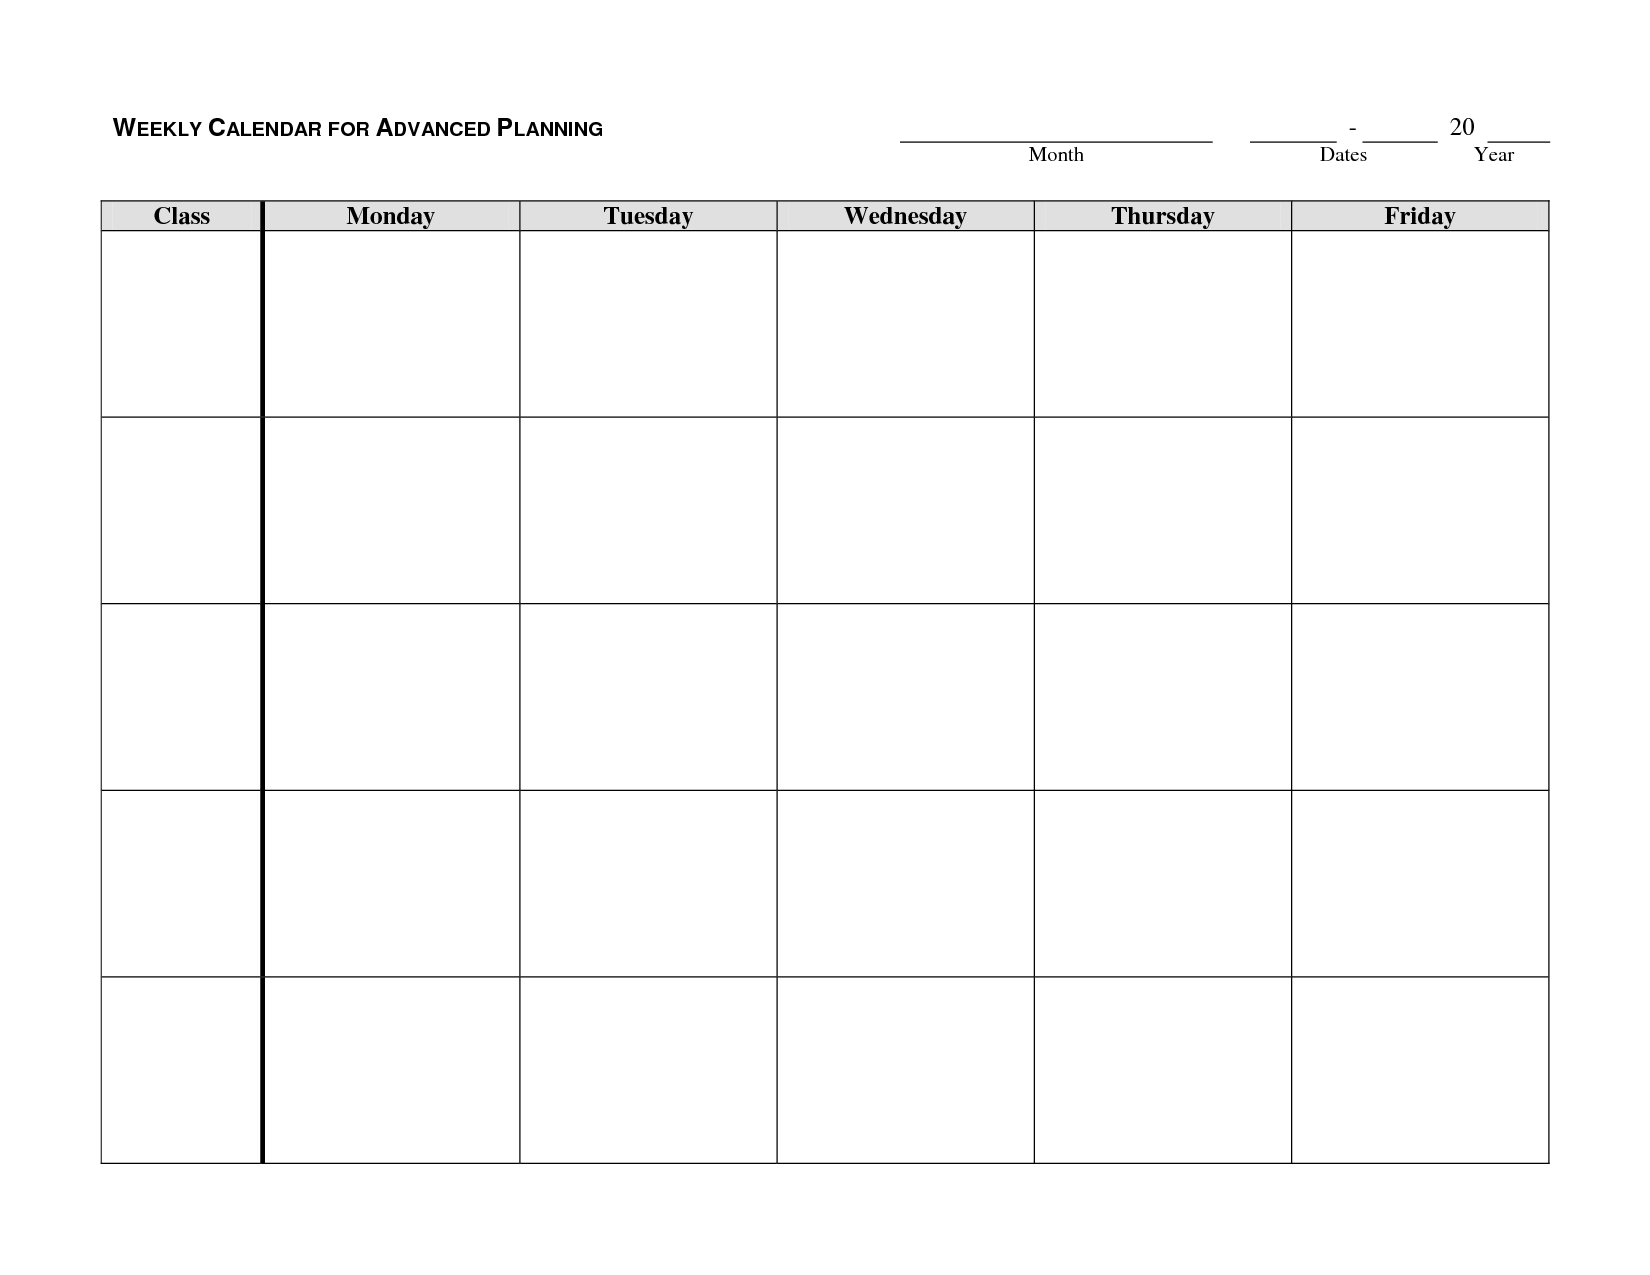 Calendar Planner Template : Weekly calendar template google search autism school